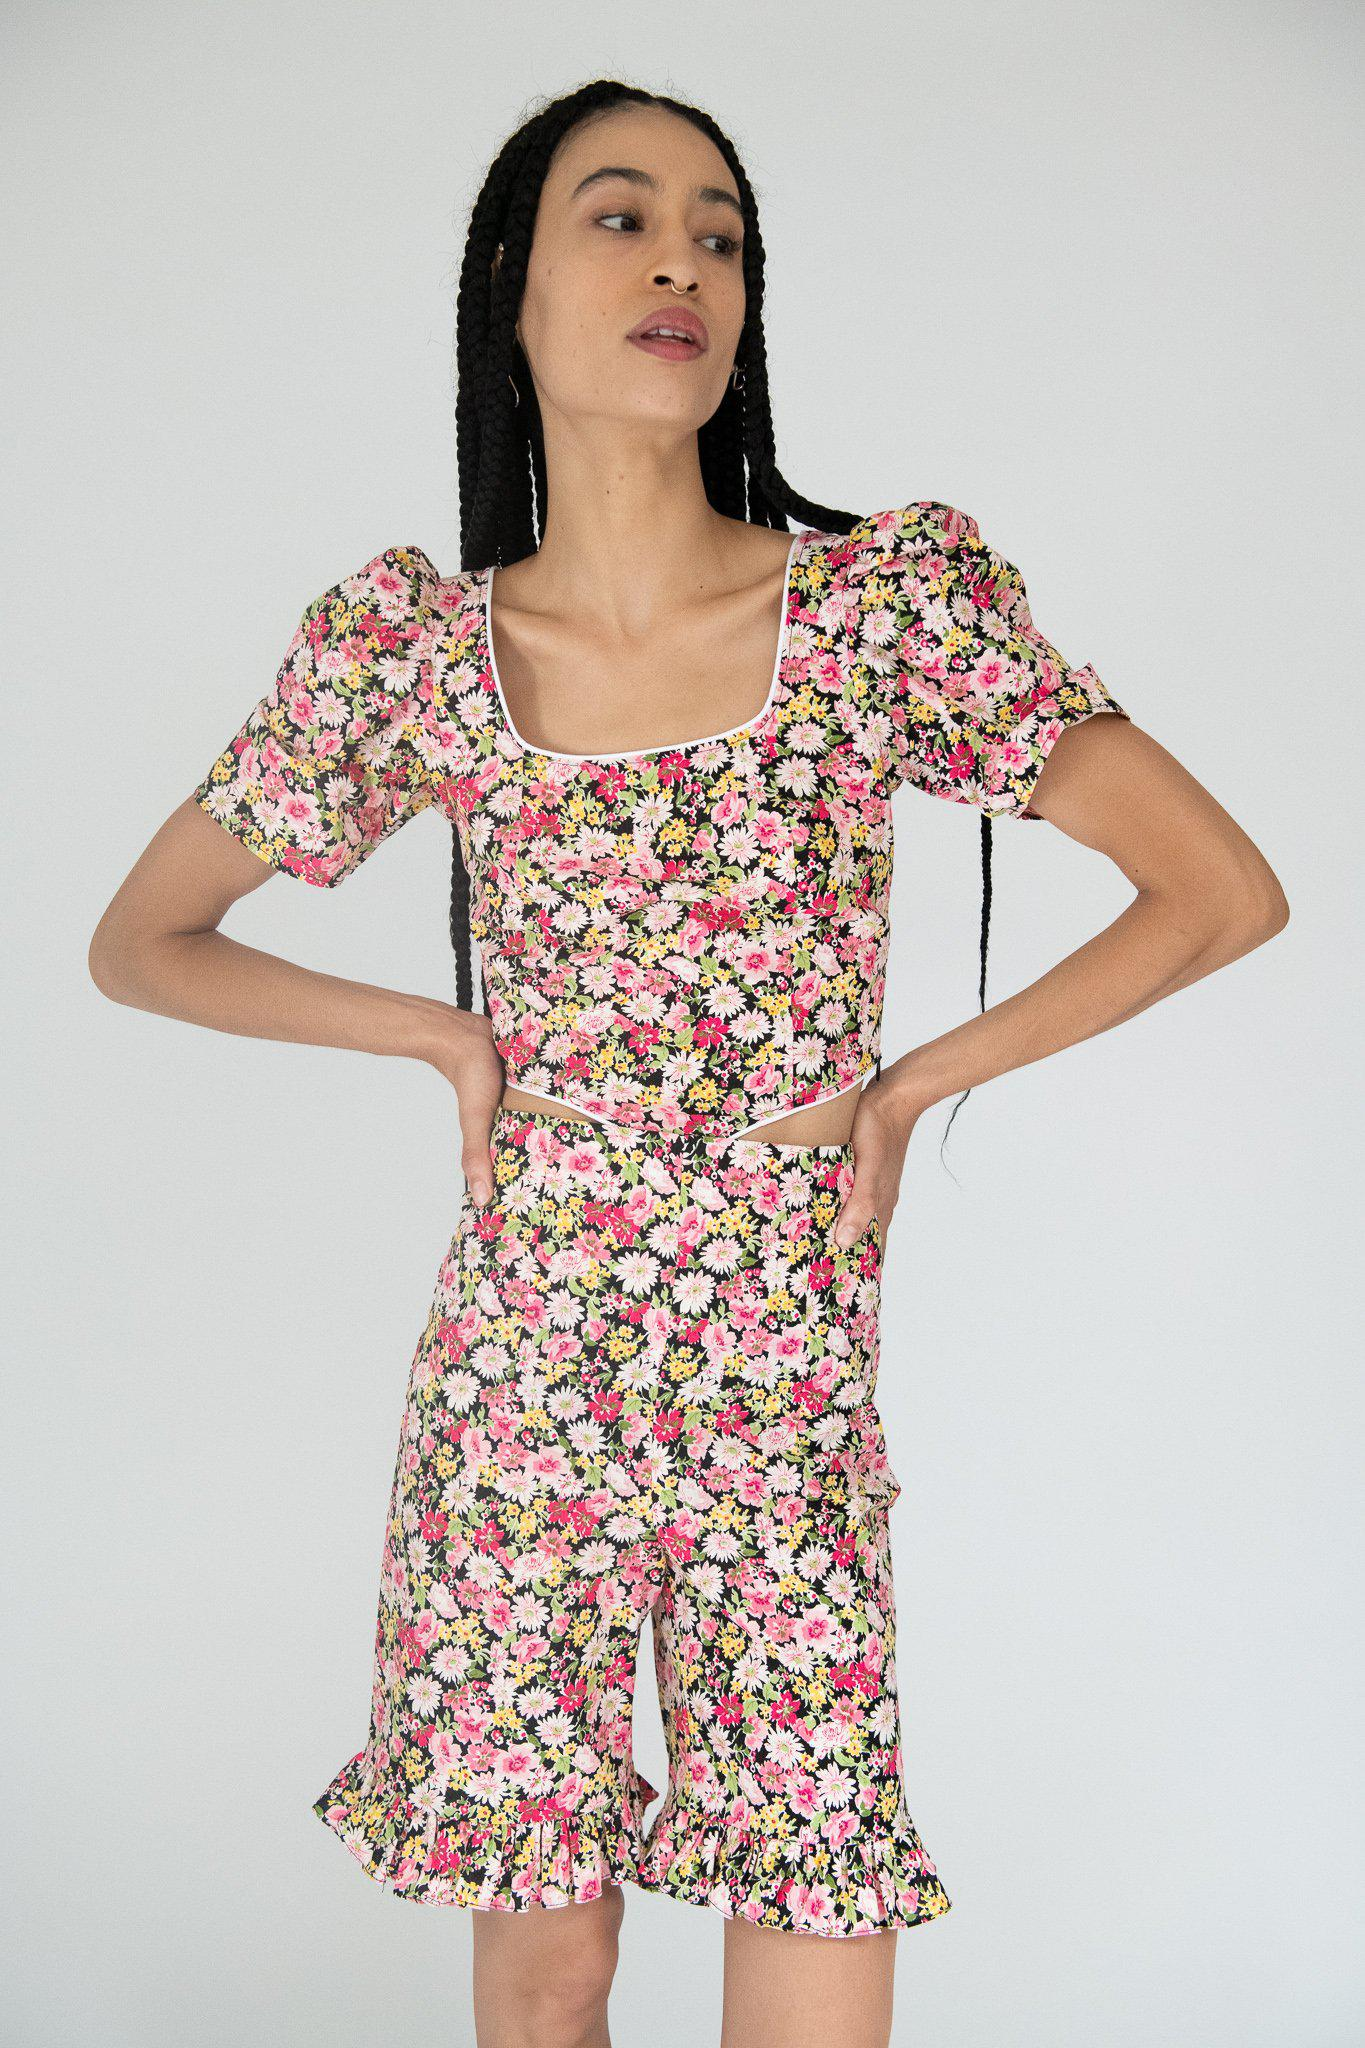 Ruffle Short in Pink Floral